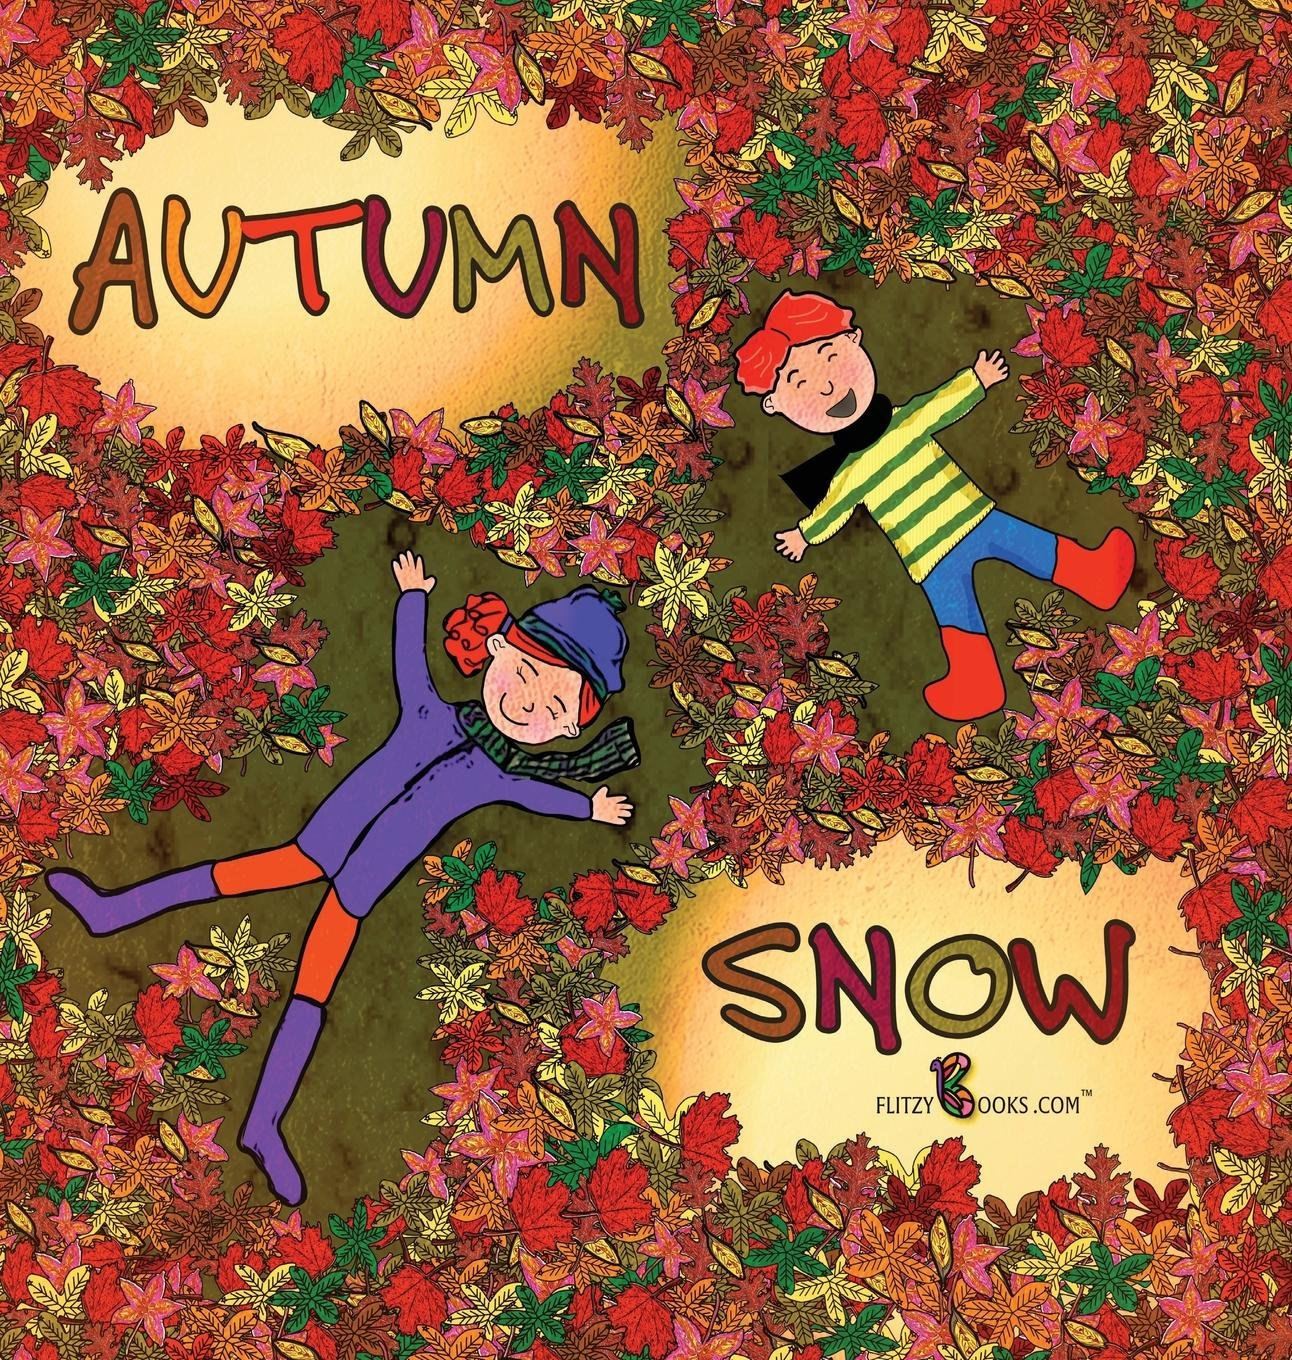 Autumn Snow (Flitzy Books Rhyming Series)